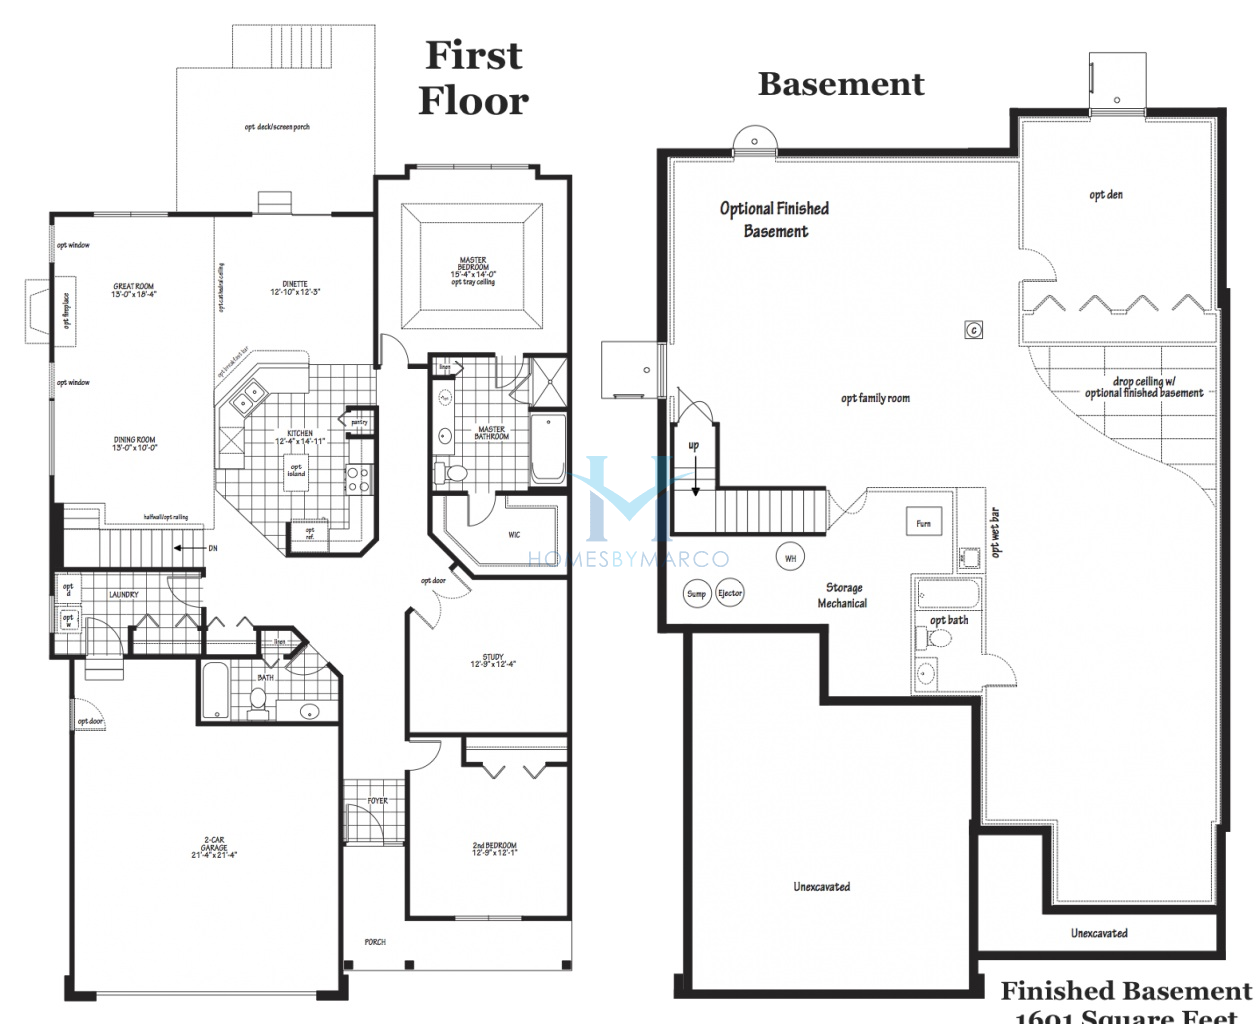 2 Car Garage Townhome Plans - Engine Diagram And Wiring